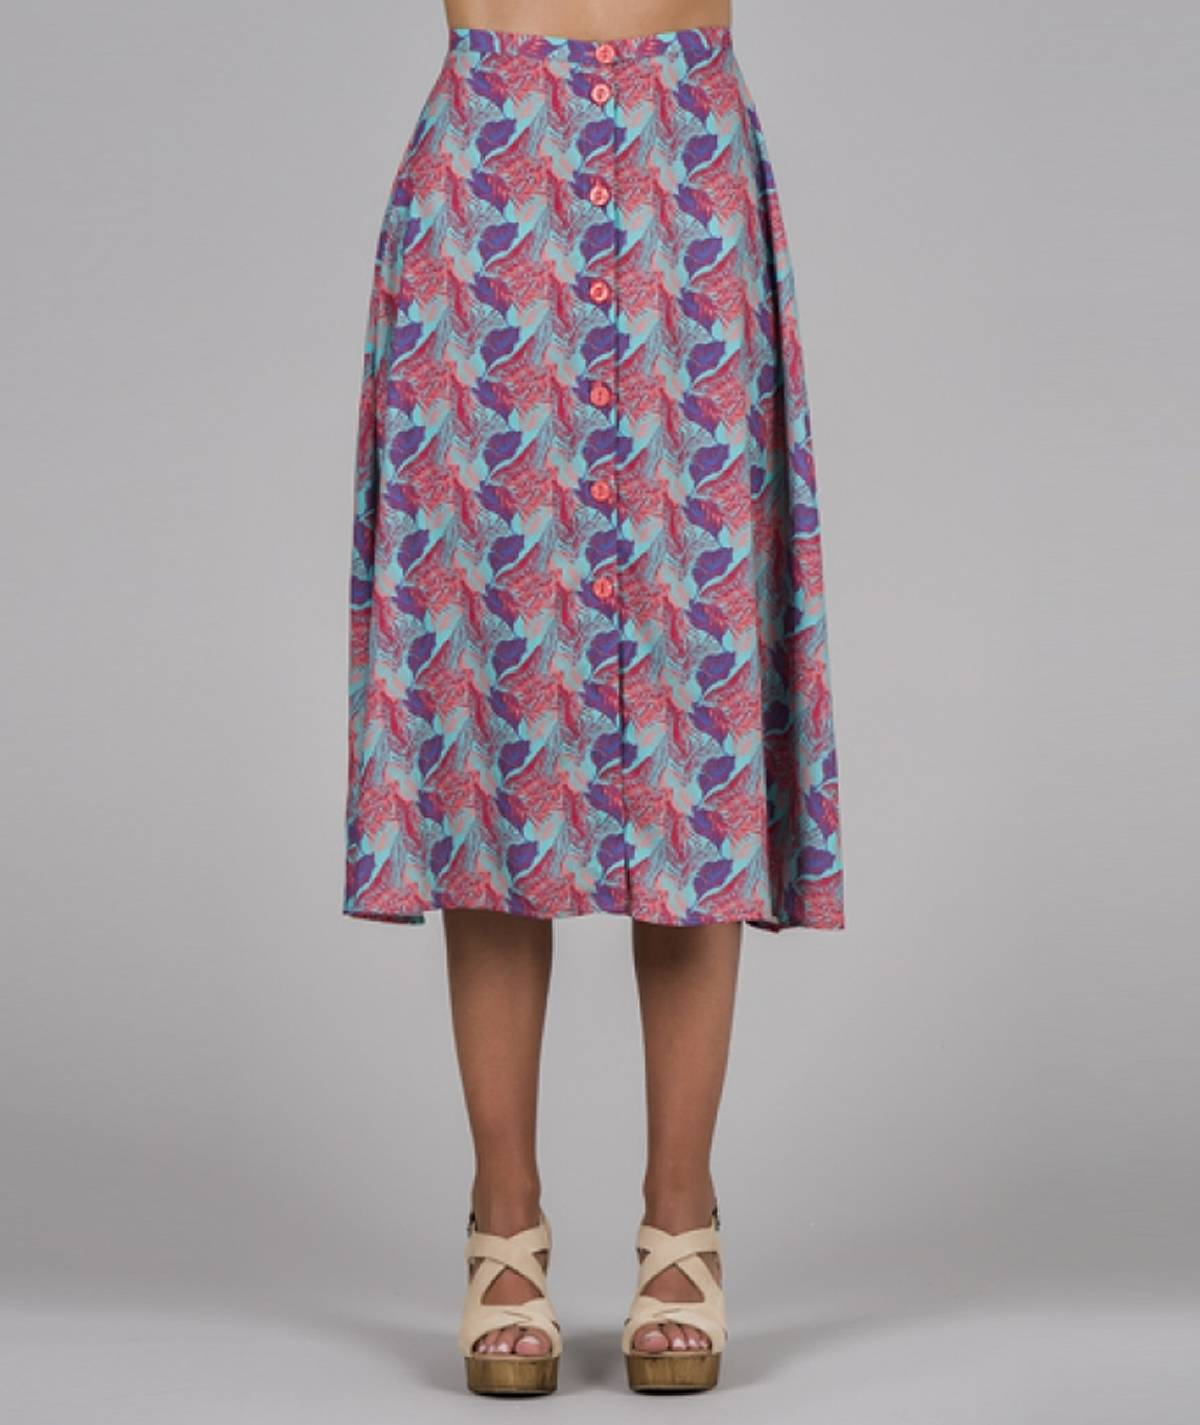 Skirt with leaves print